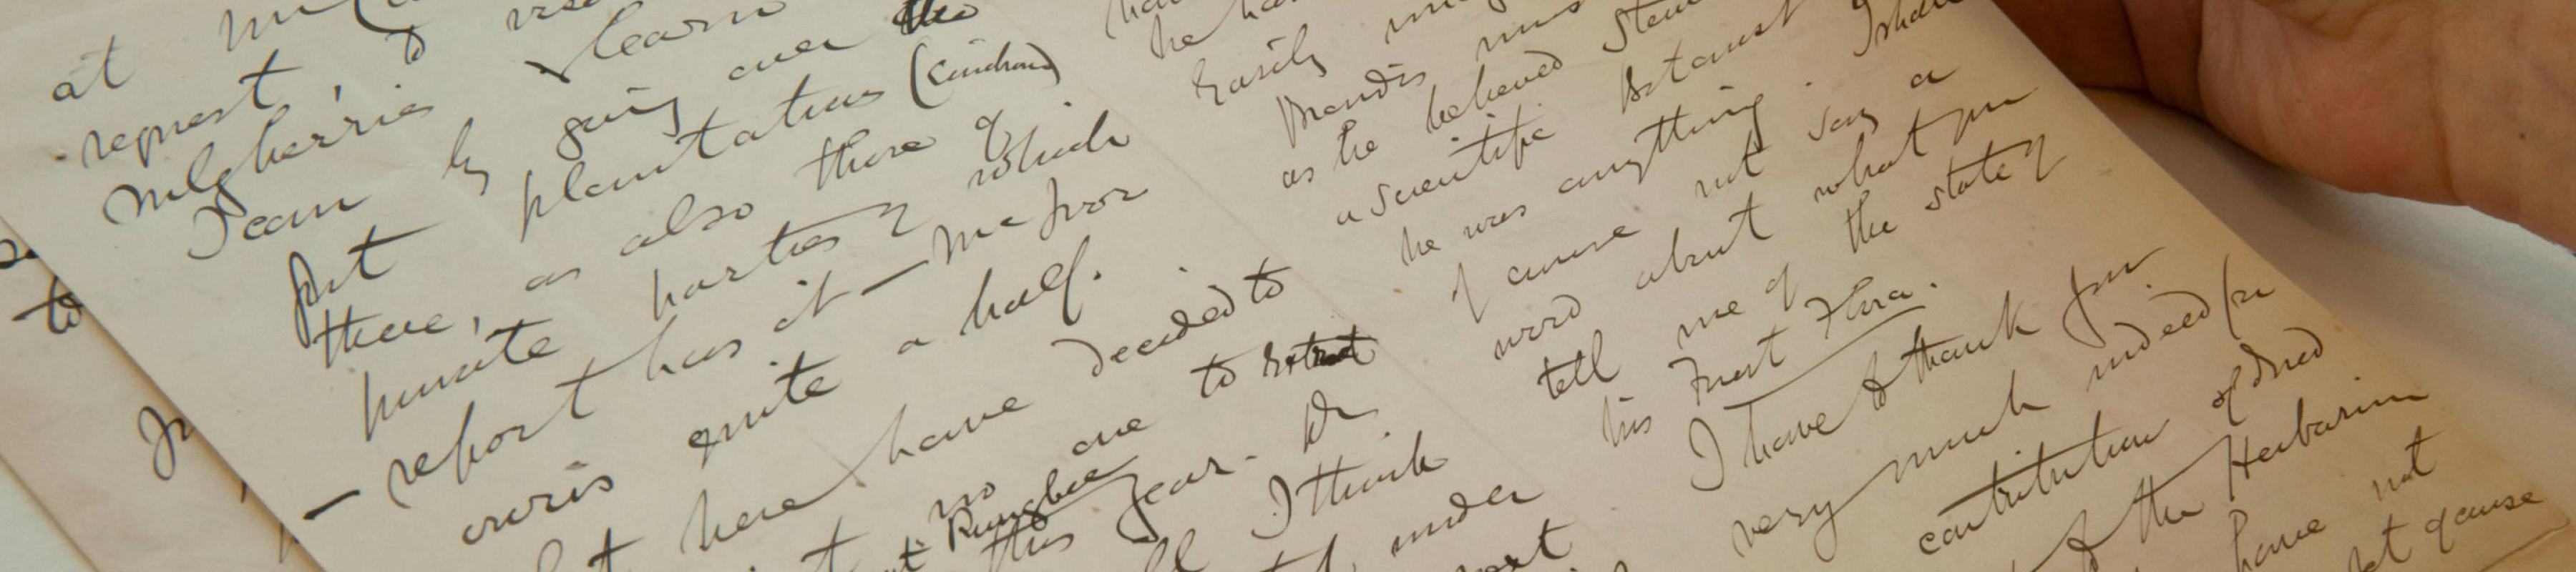 Letter from Kew's Archive